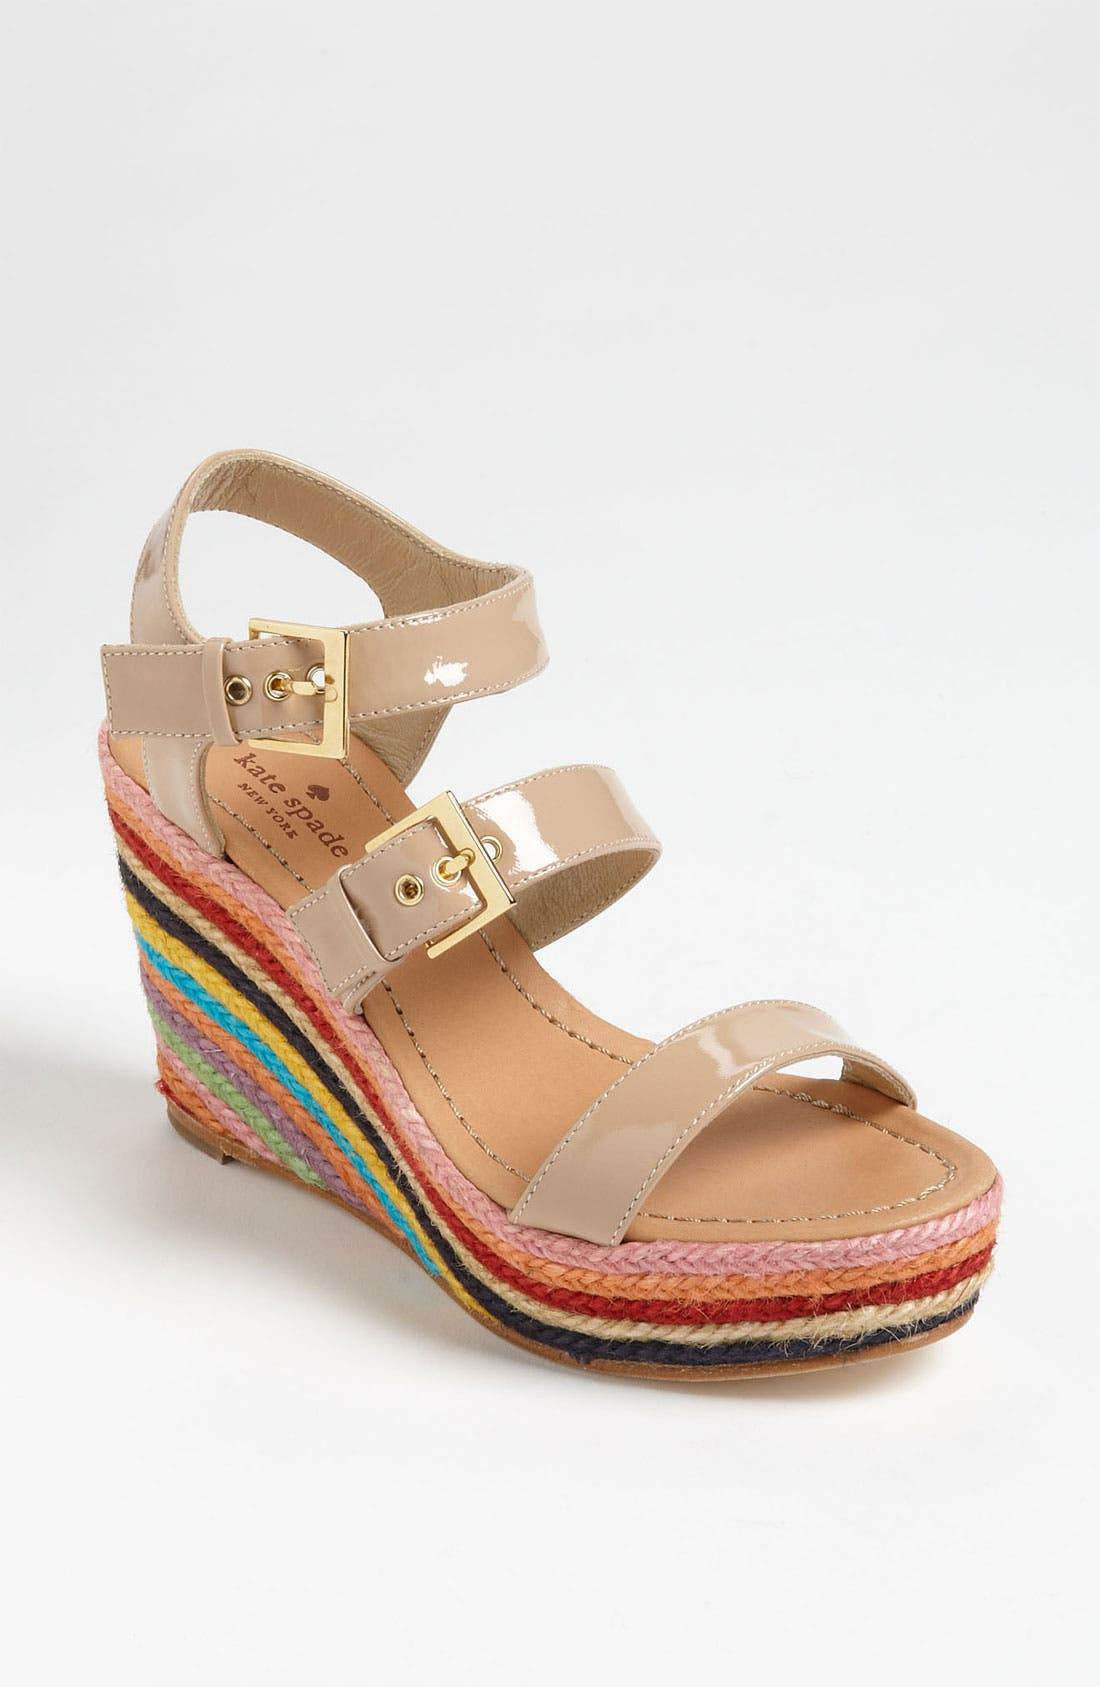 Alternate Image 1 Selected - kate spade new york 'darla' sandal